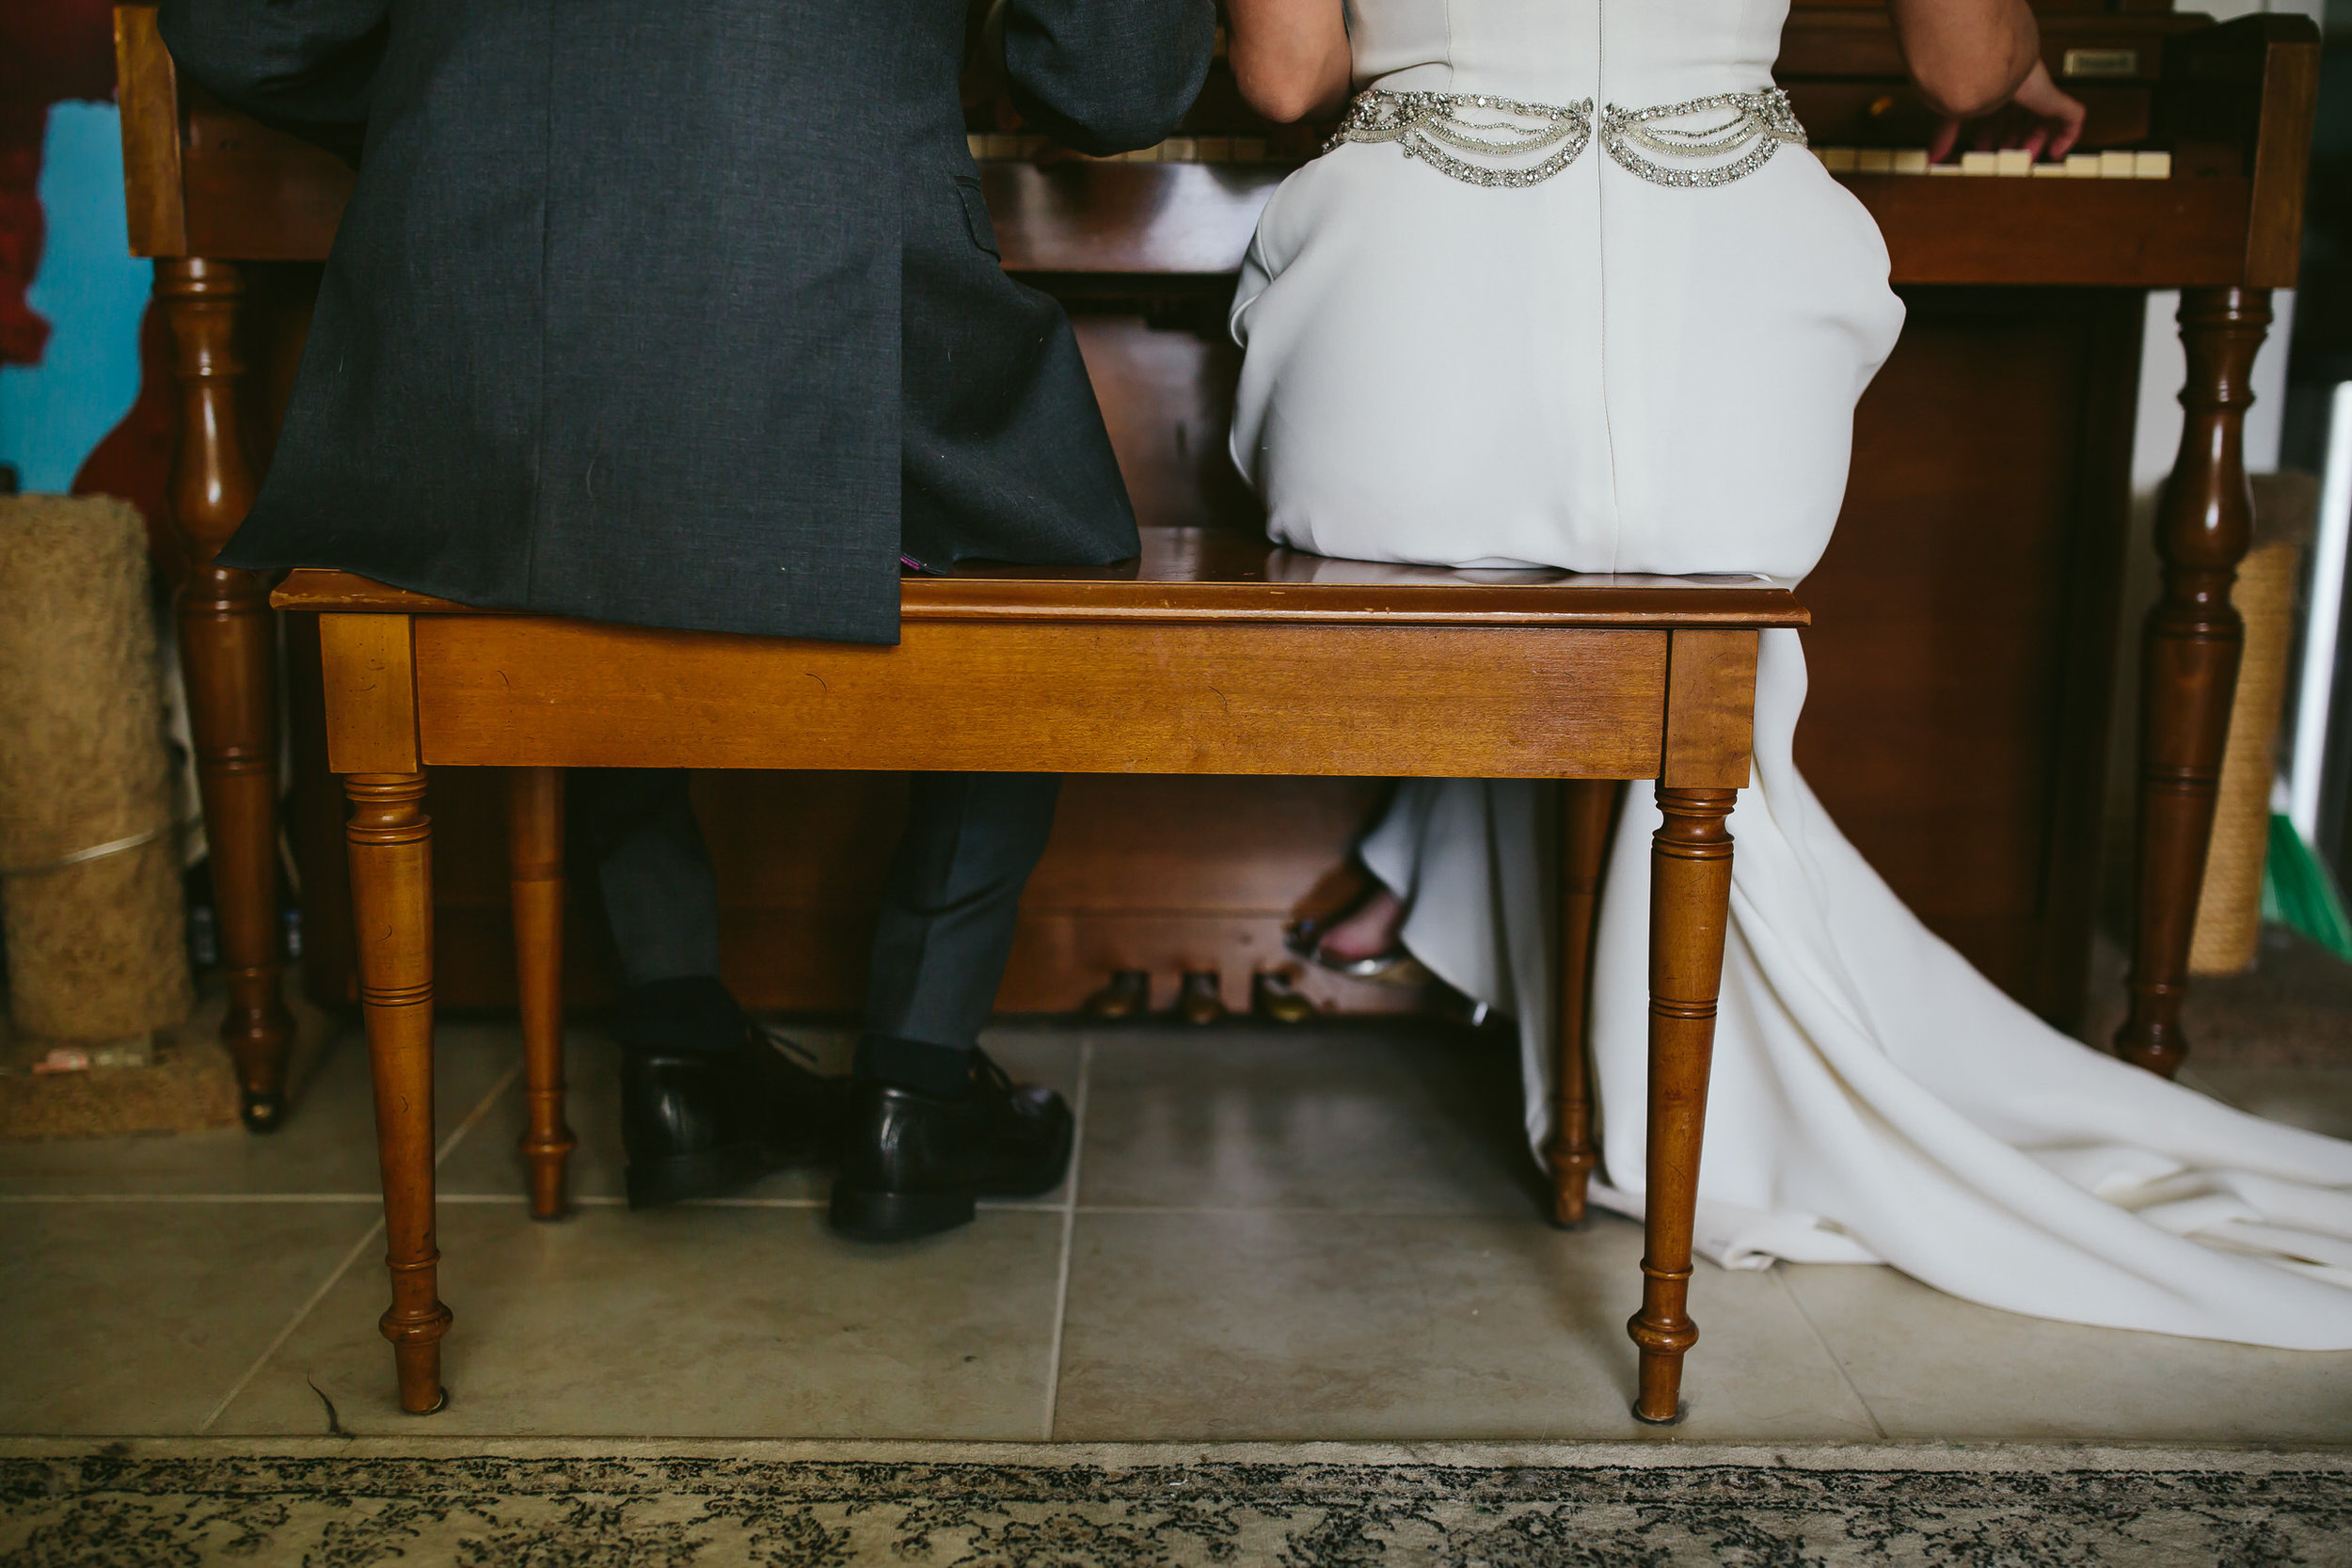 bride_and_groom_in_home_session_wedding_fort_lauderdale_photographer_steph_lynn_photo-9.jpg